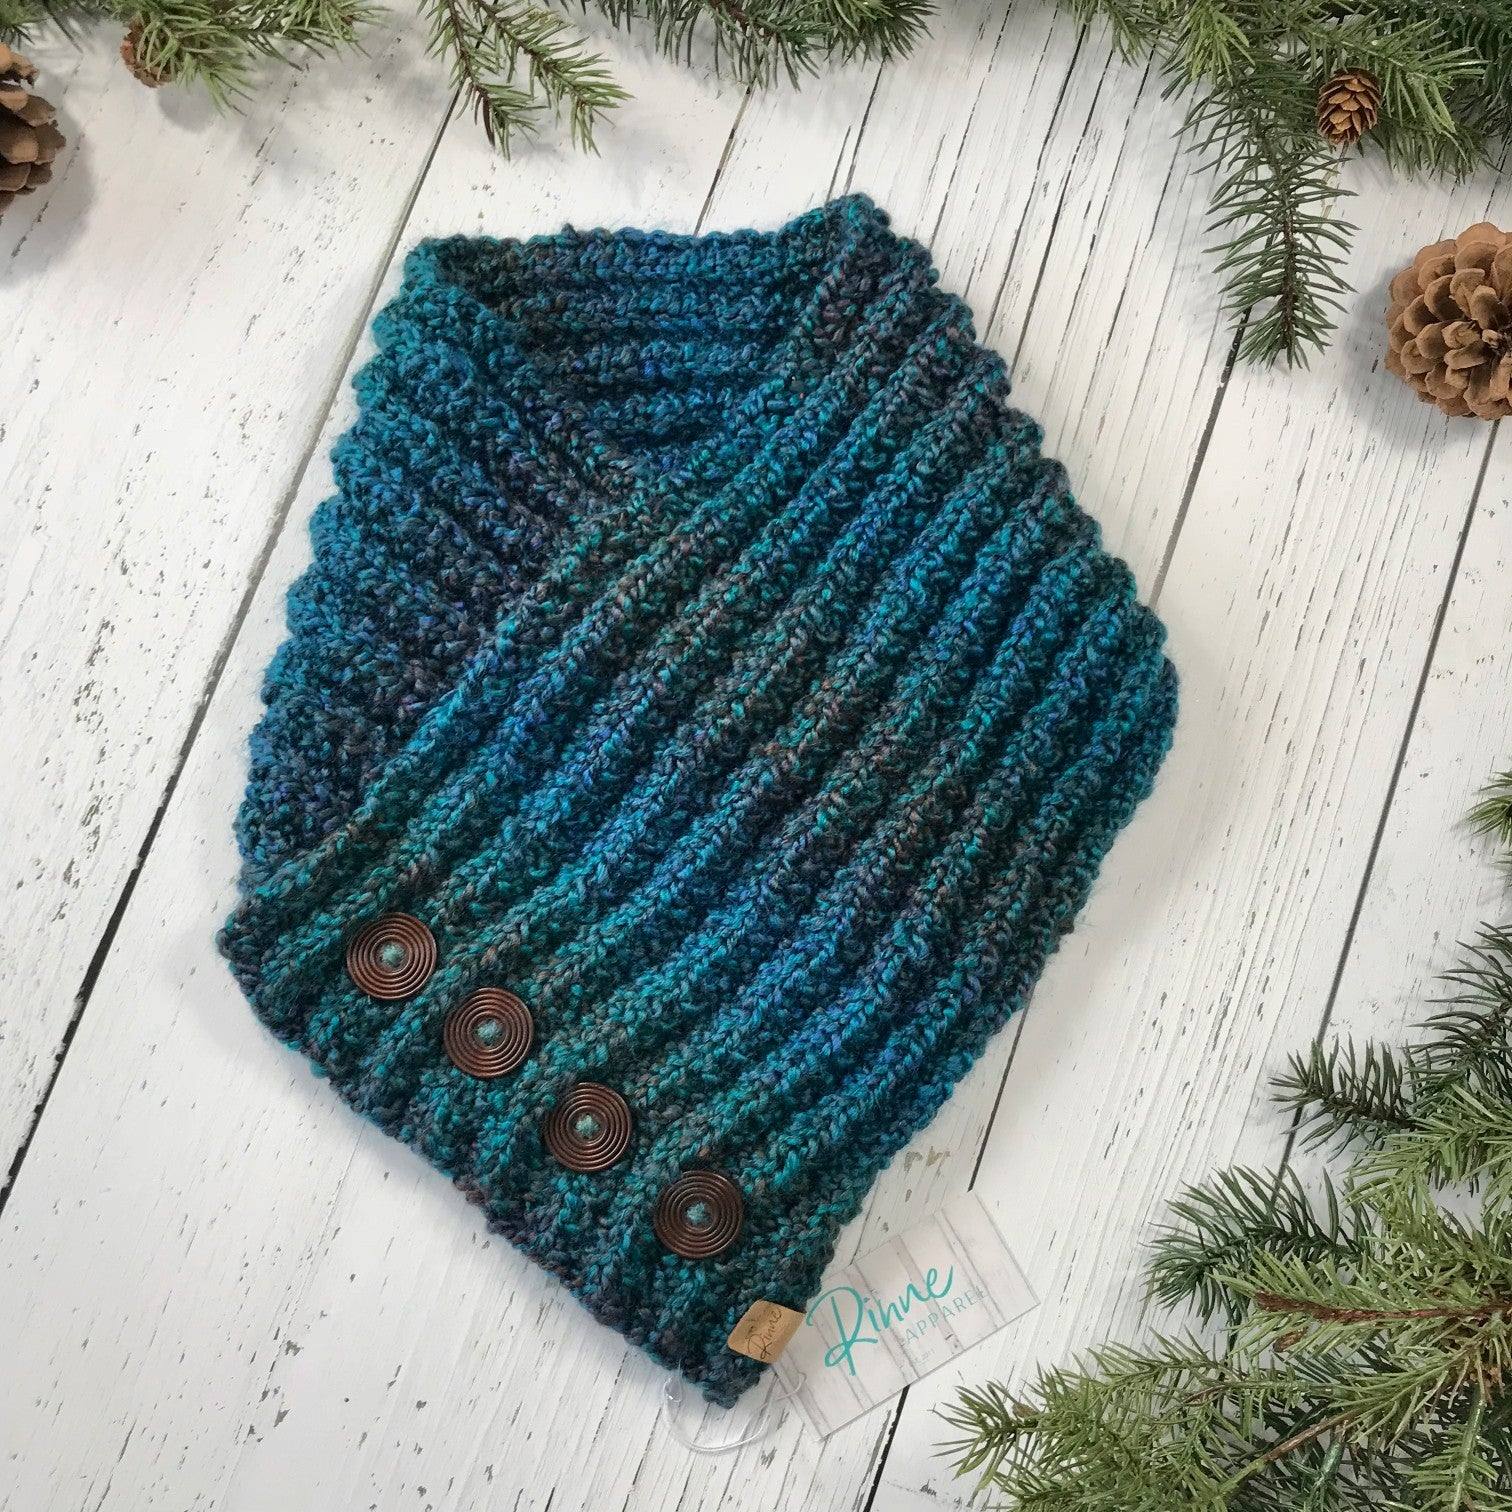 Classic Knit Button Cowl in lagoon, shades of dark teal and navy, dark wooden ridged buttons